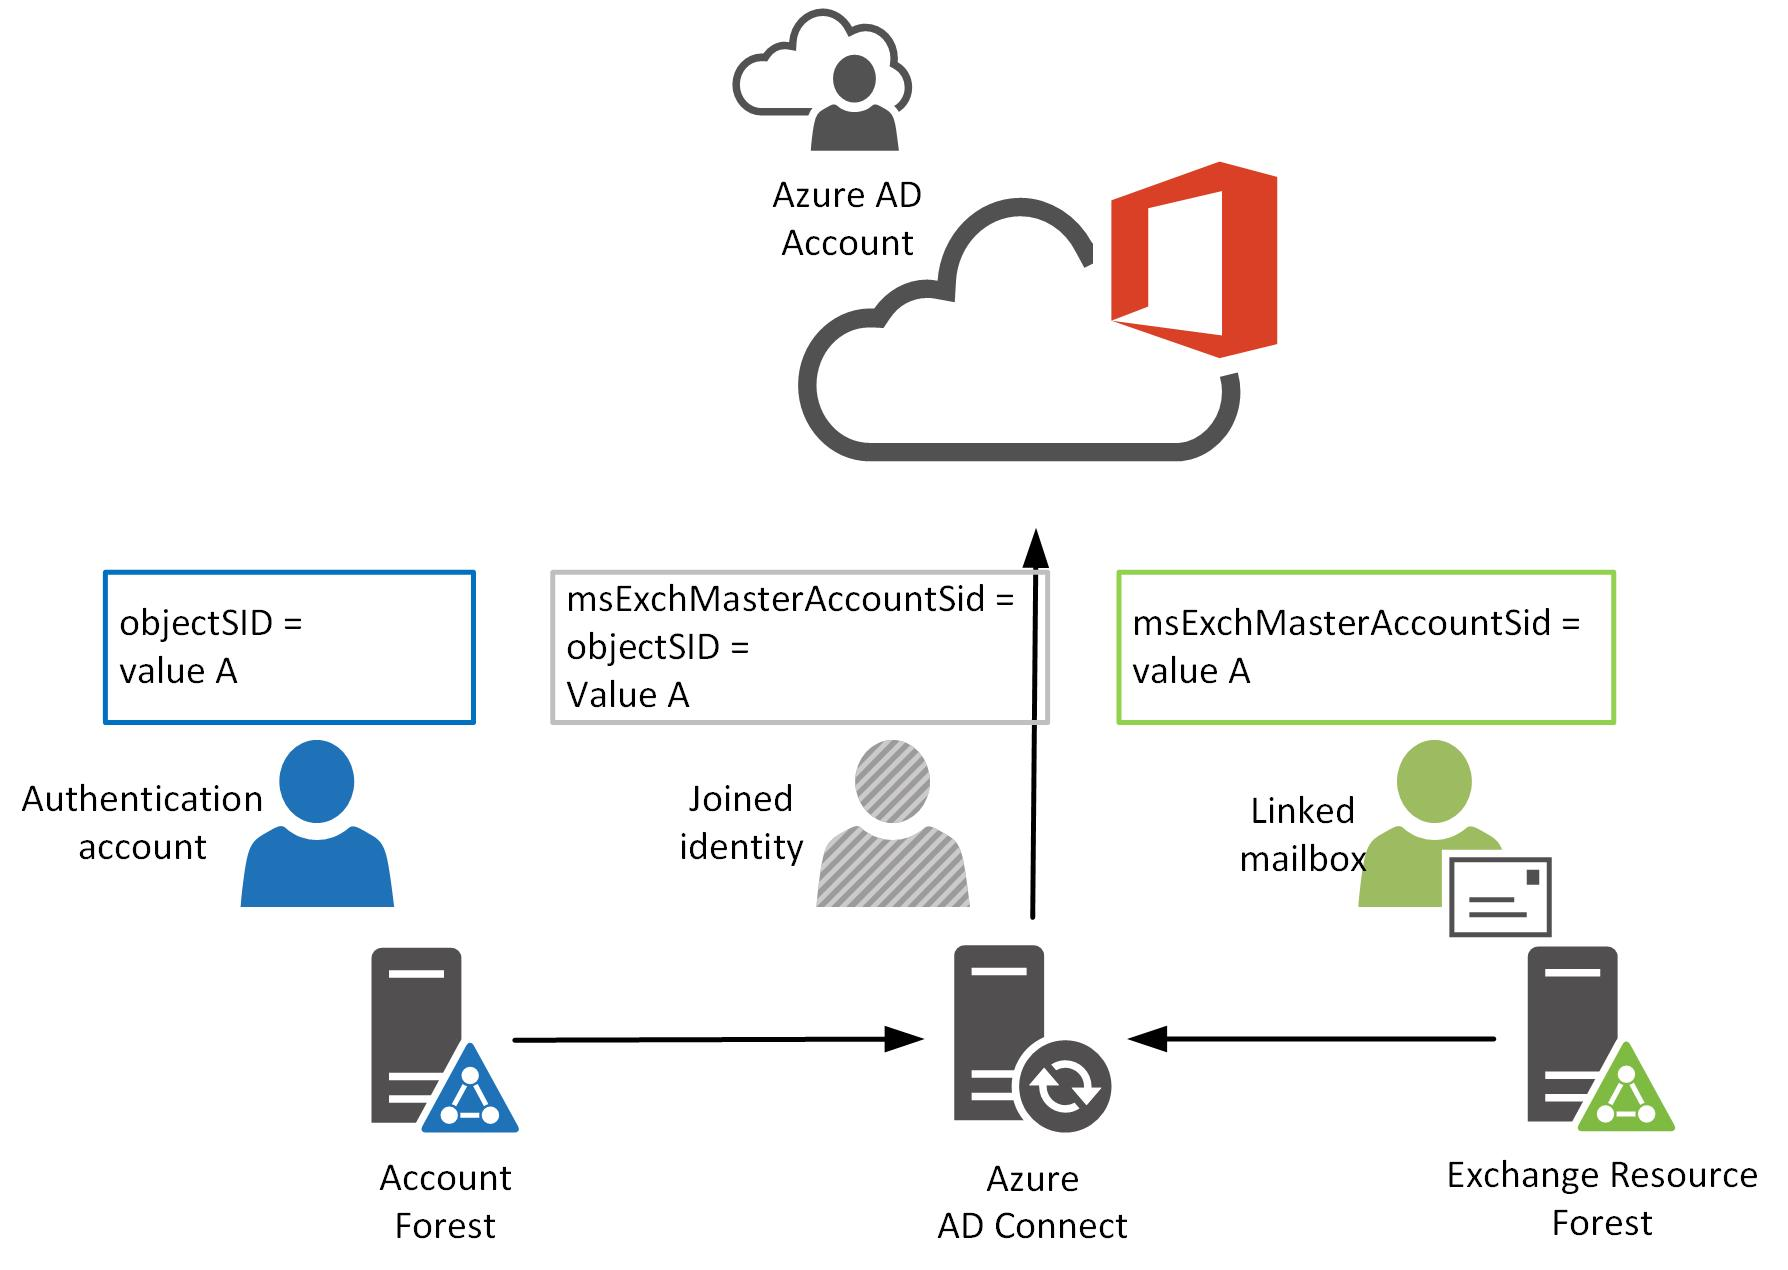 Linked mailbox matched with authentication account